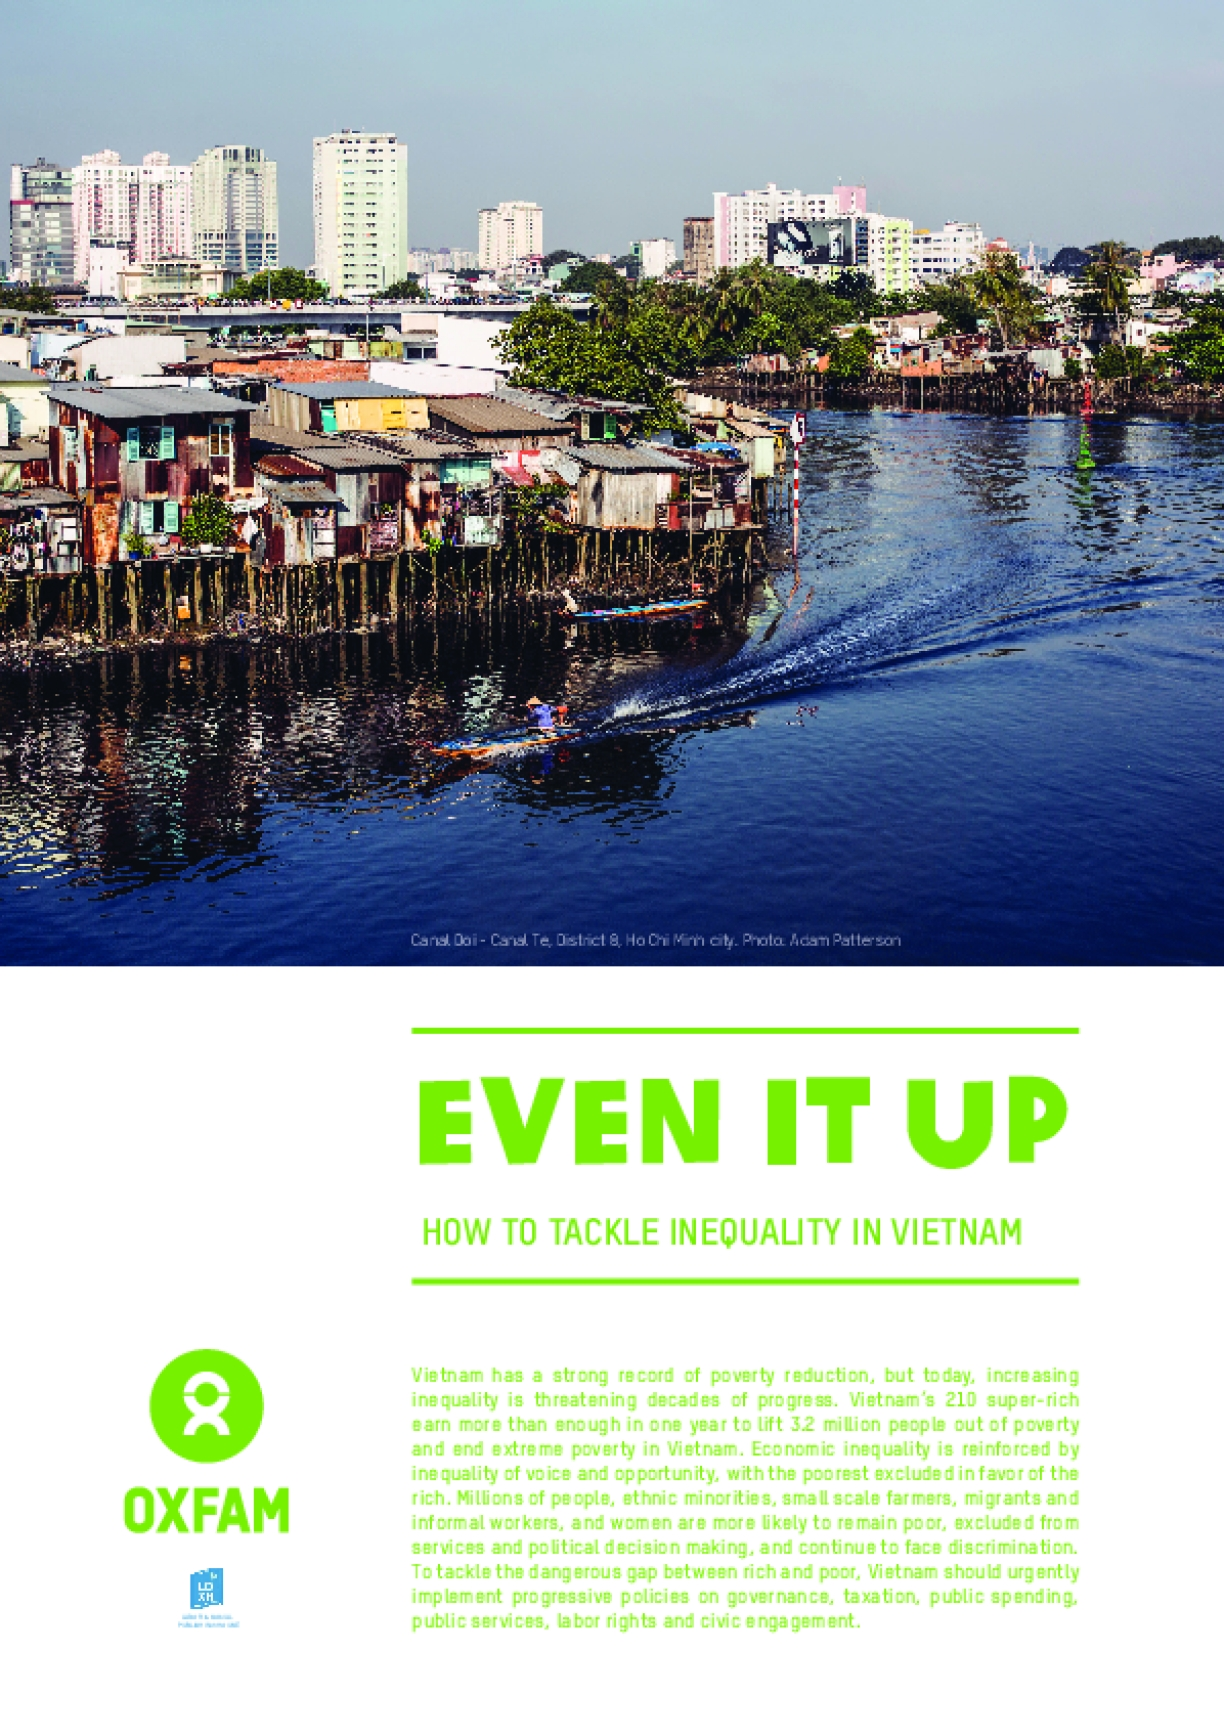 Even it Up: How to Tackle Inequality in Vietnam